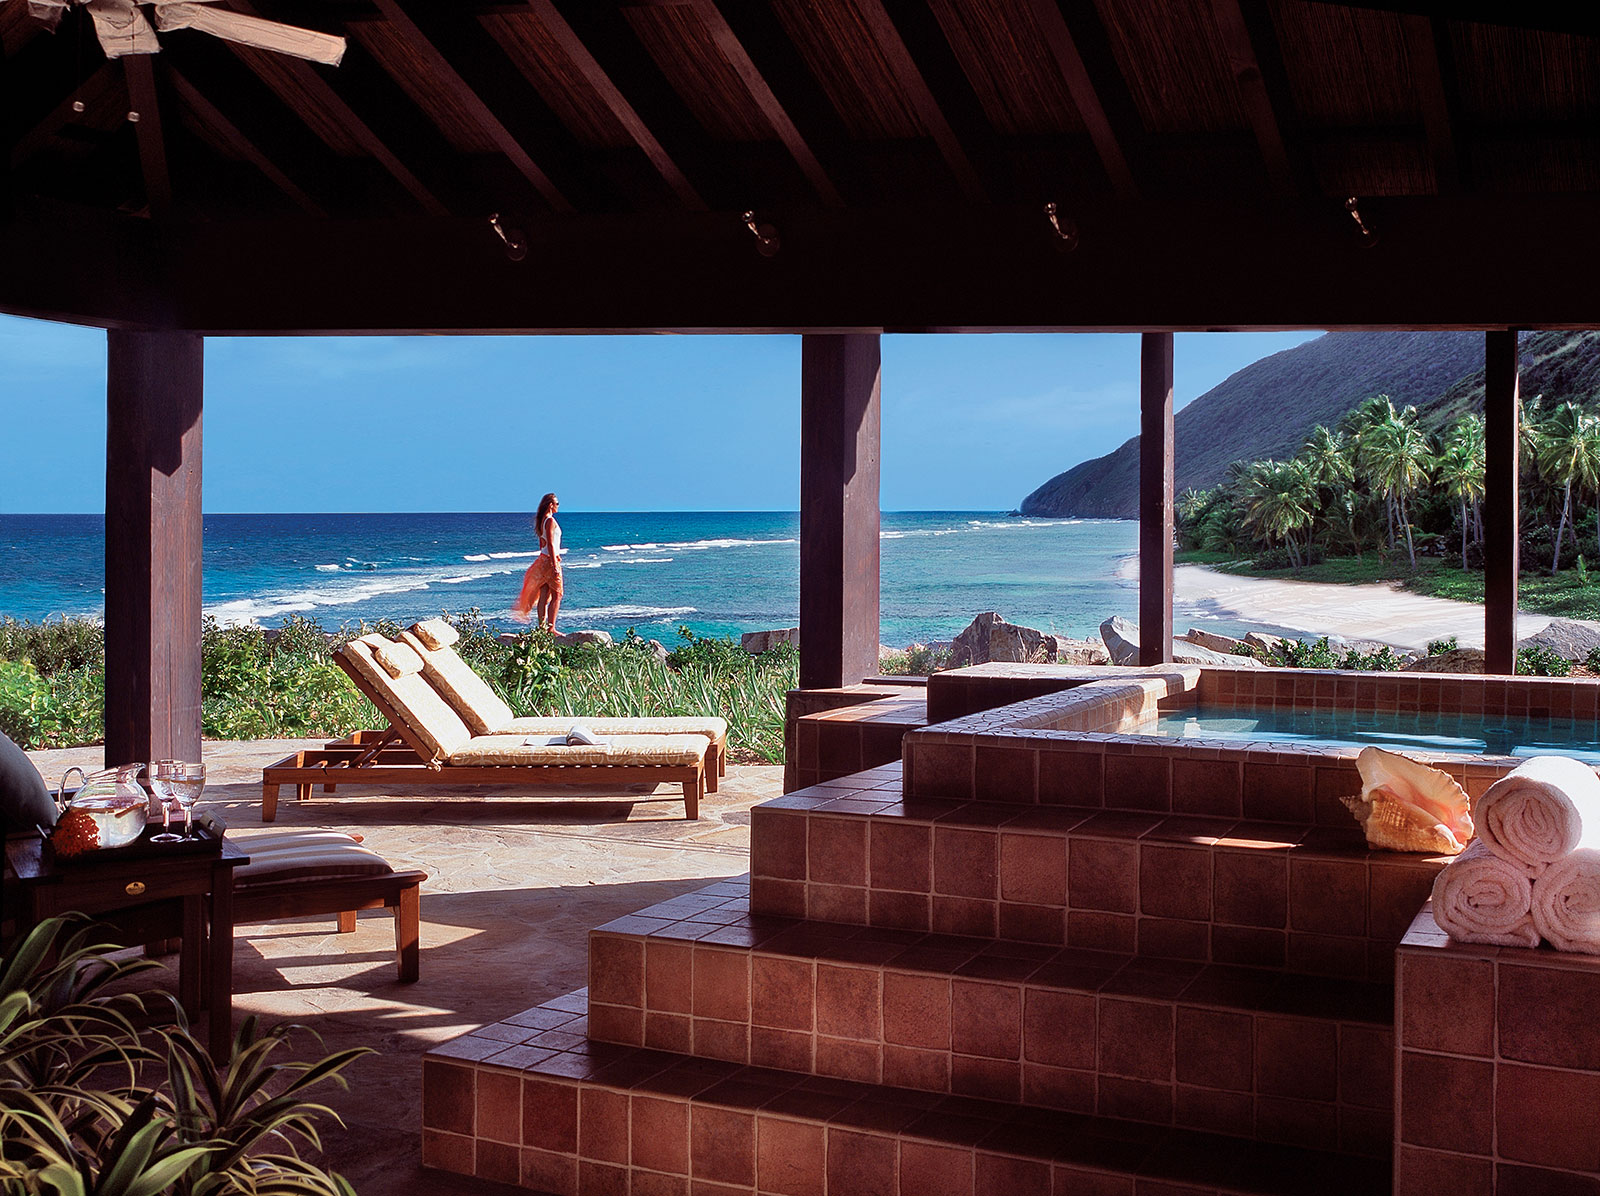 Private Villas and Resorts in The British Virgin Islands